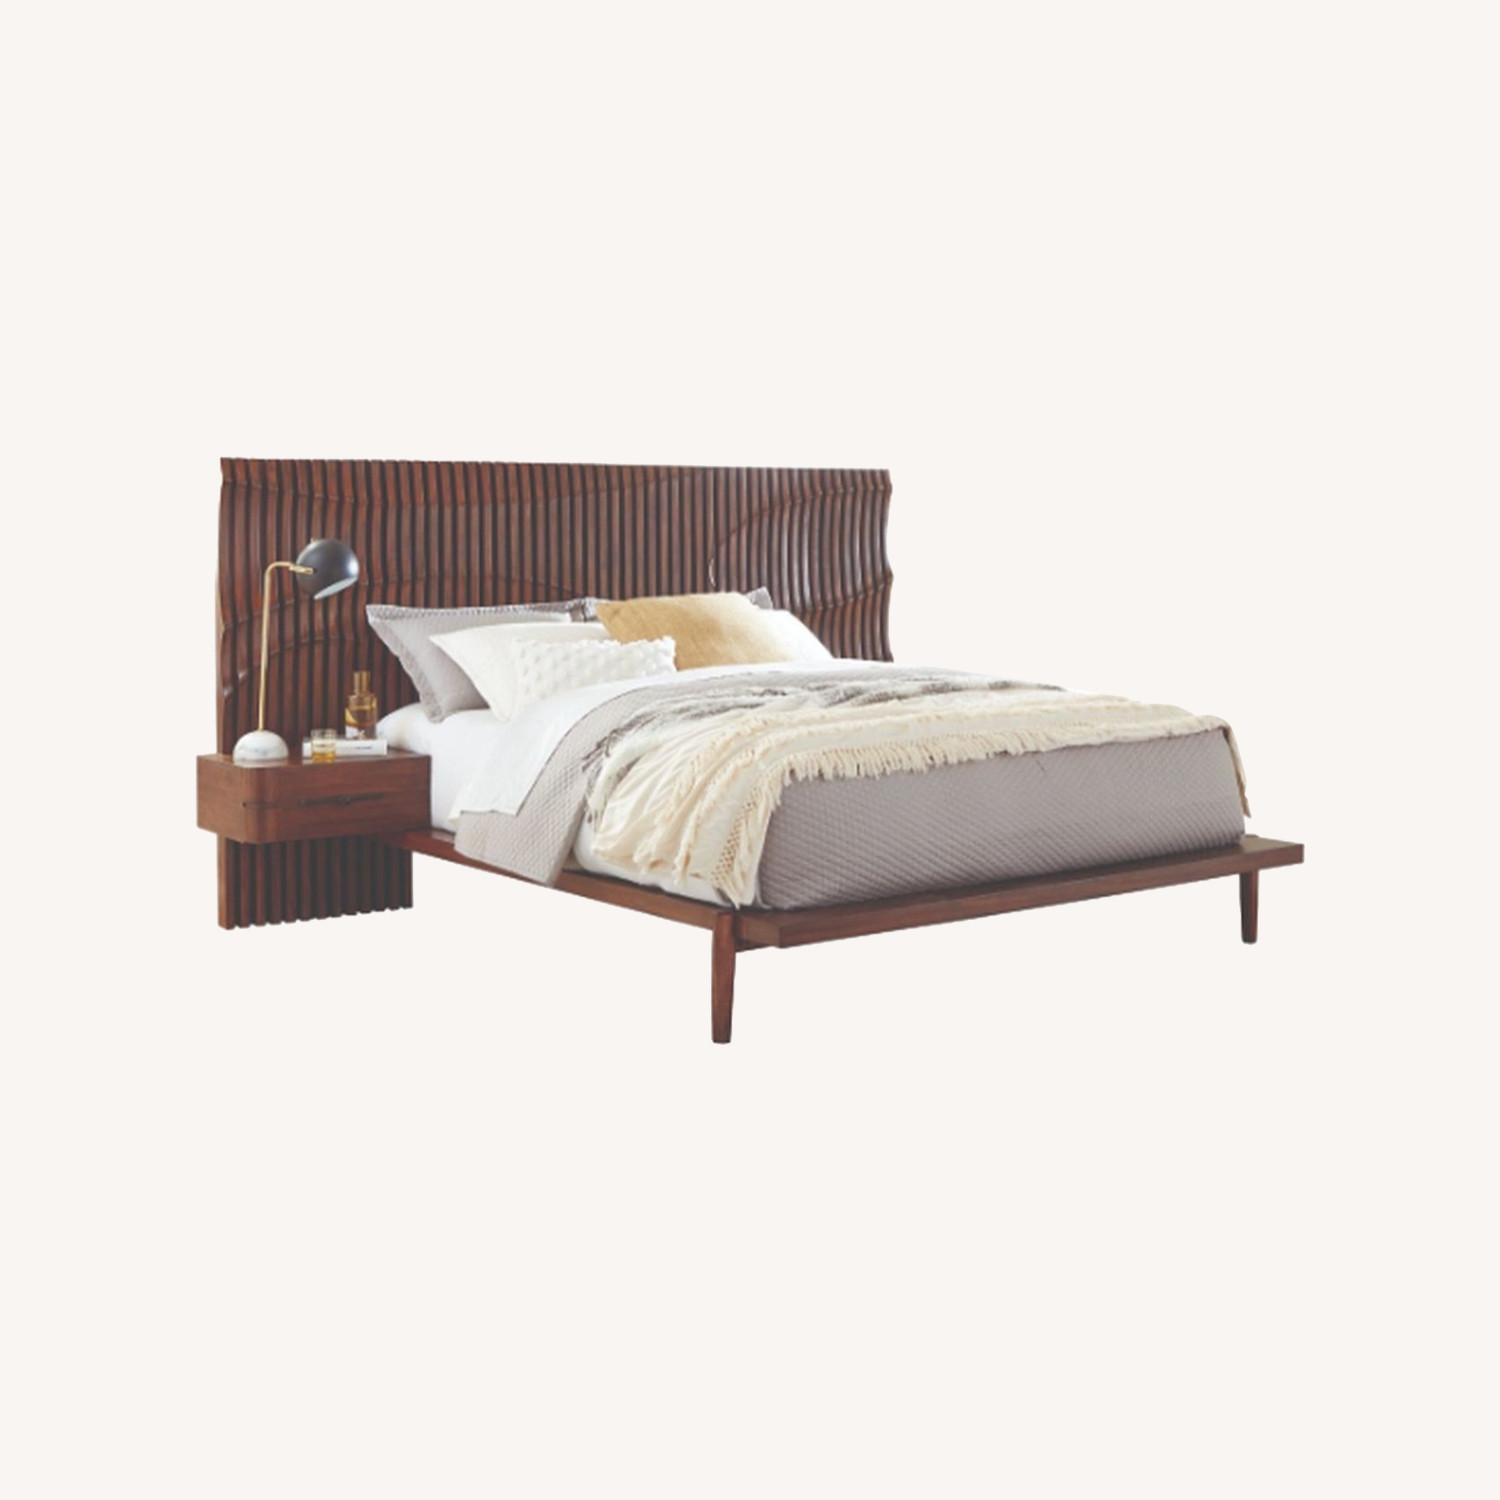 Contemporary King Bed In Dessert Teak Finish - image-3